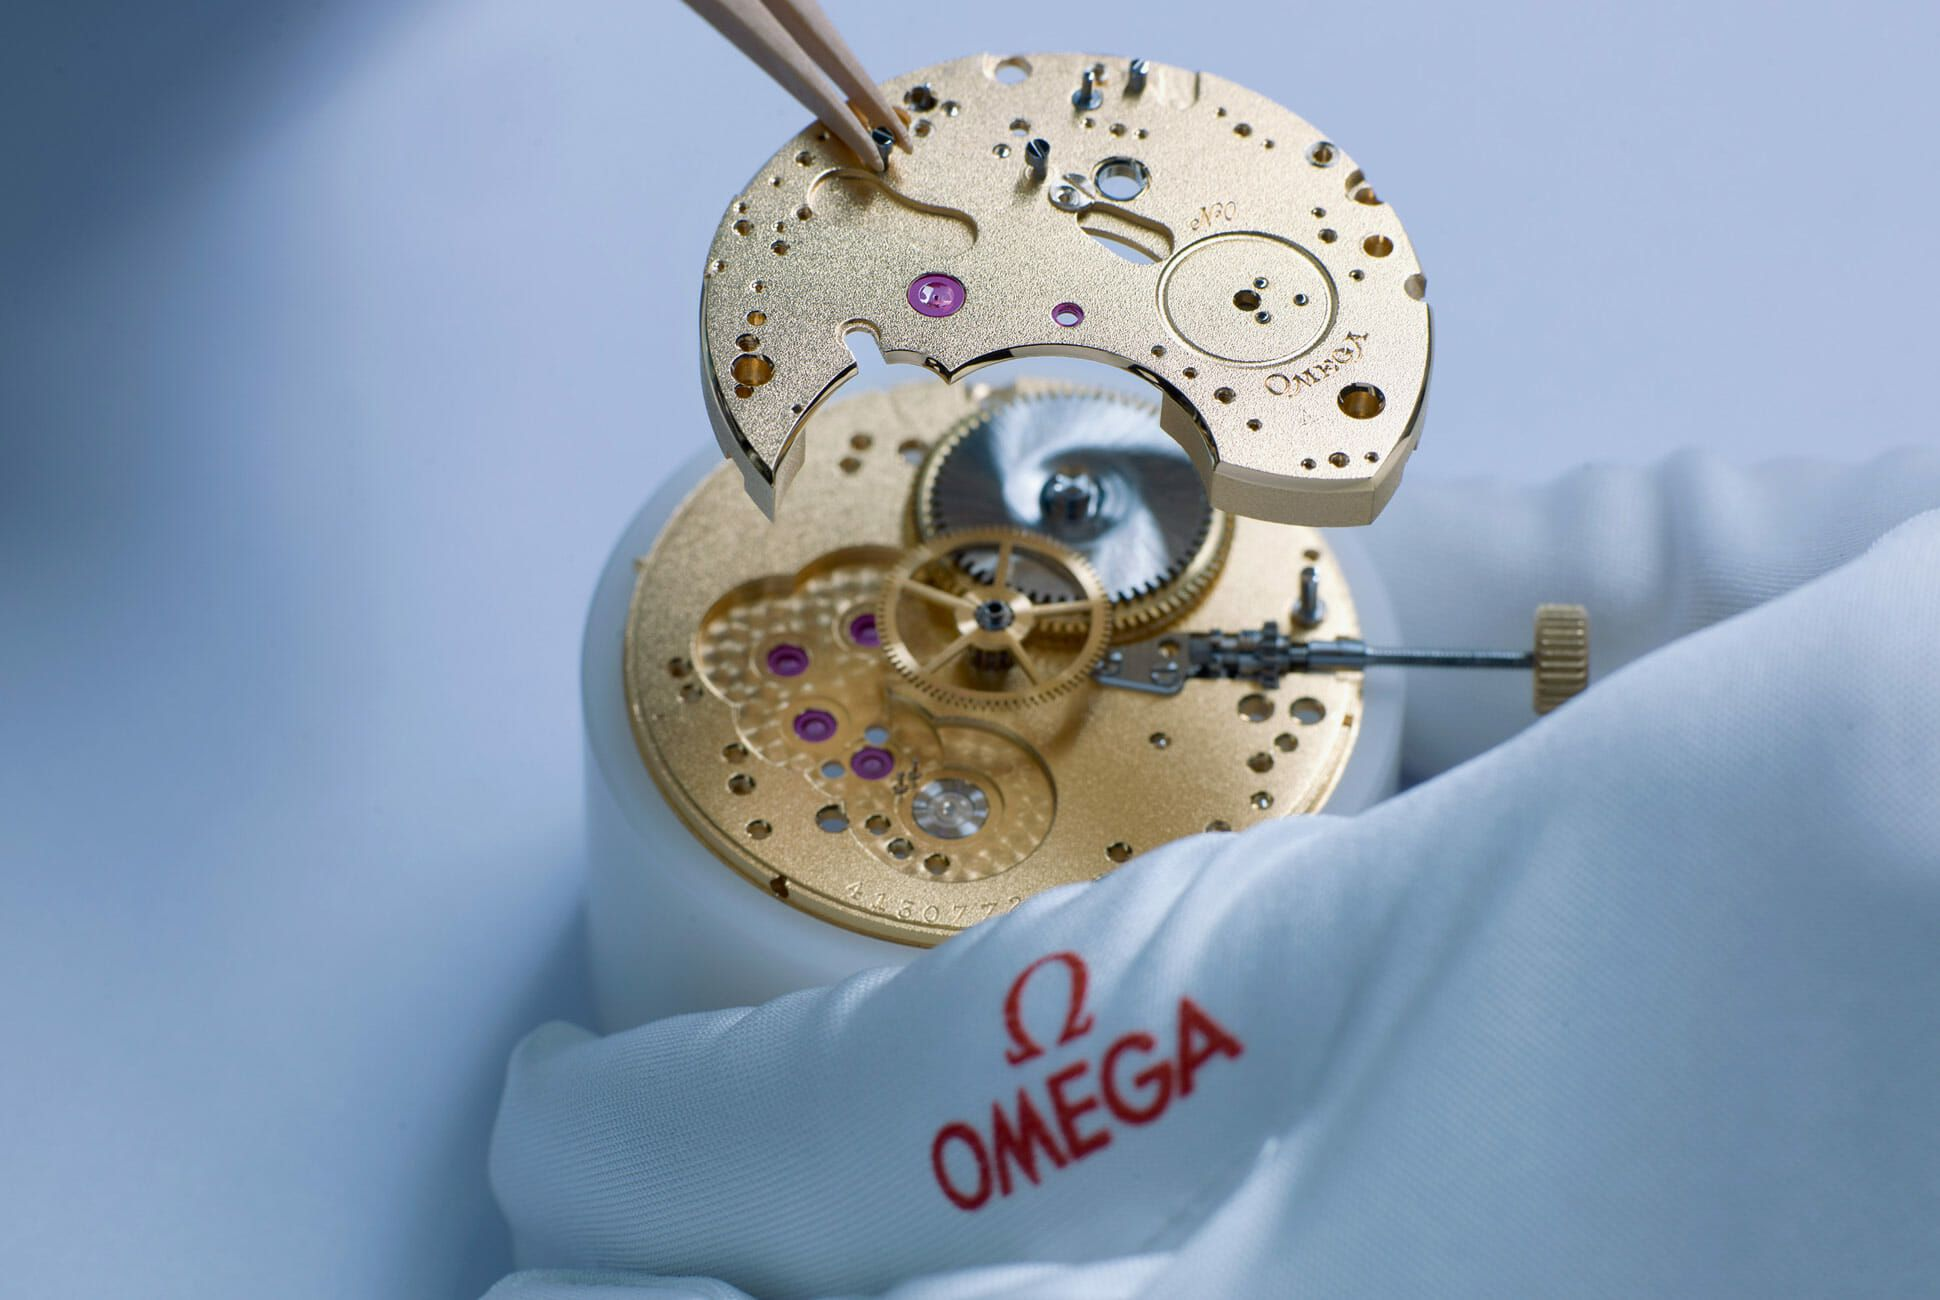 Omega-Chronograph-Limited-Edition-with-Original-Omega-Movement-gear-patrol-3